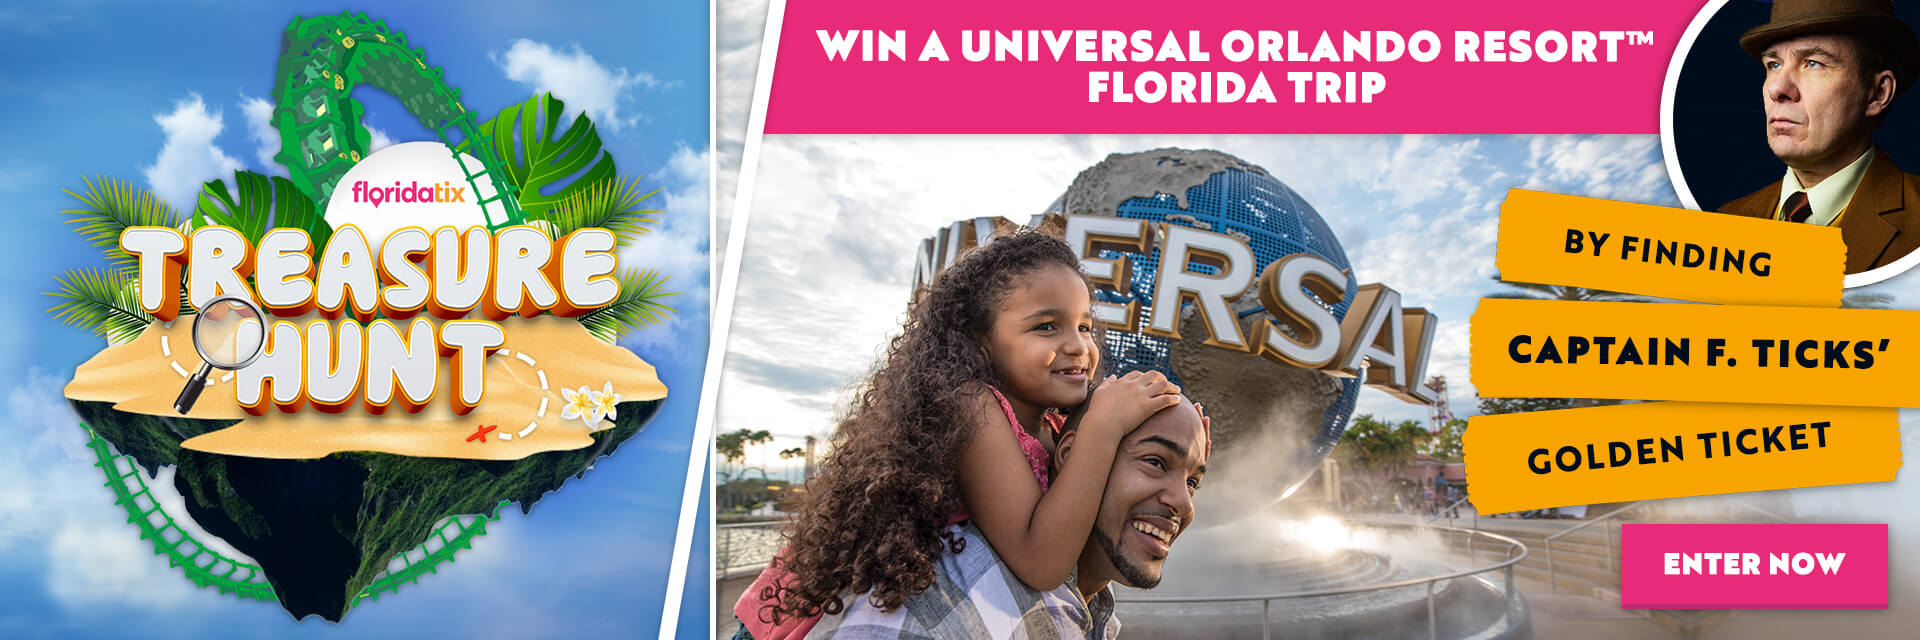 Universal Treasure Hunt WIN a Universal Orlando resort trip.